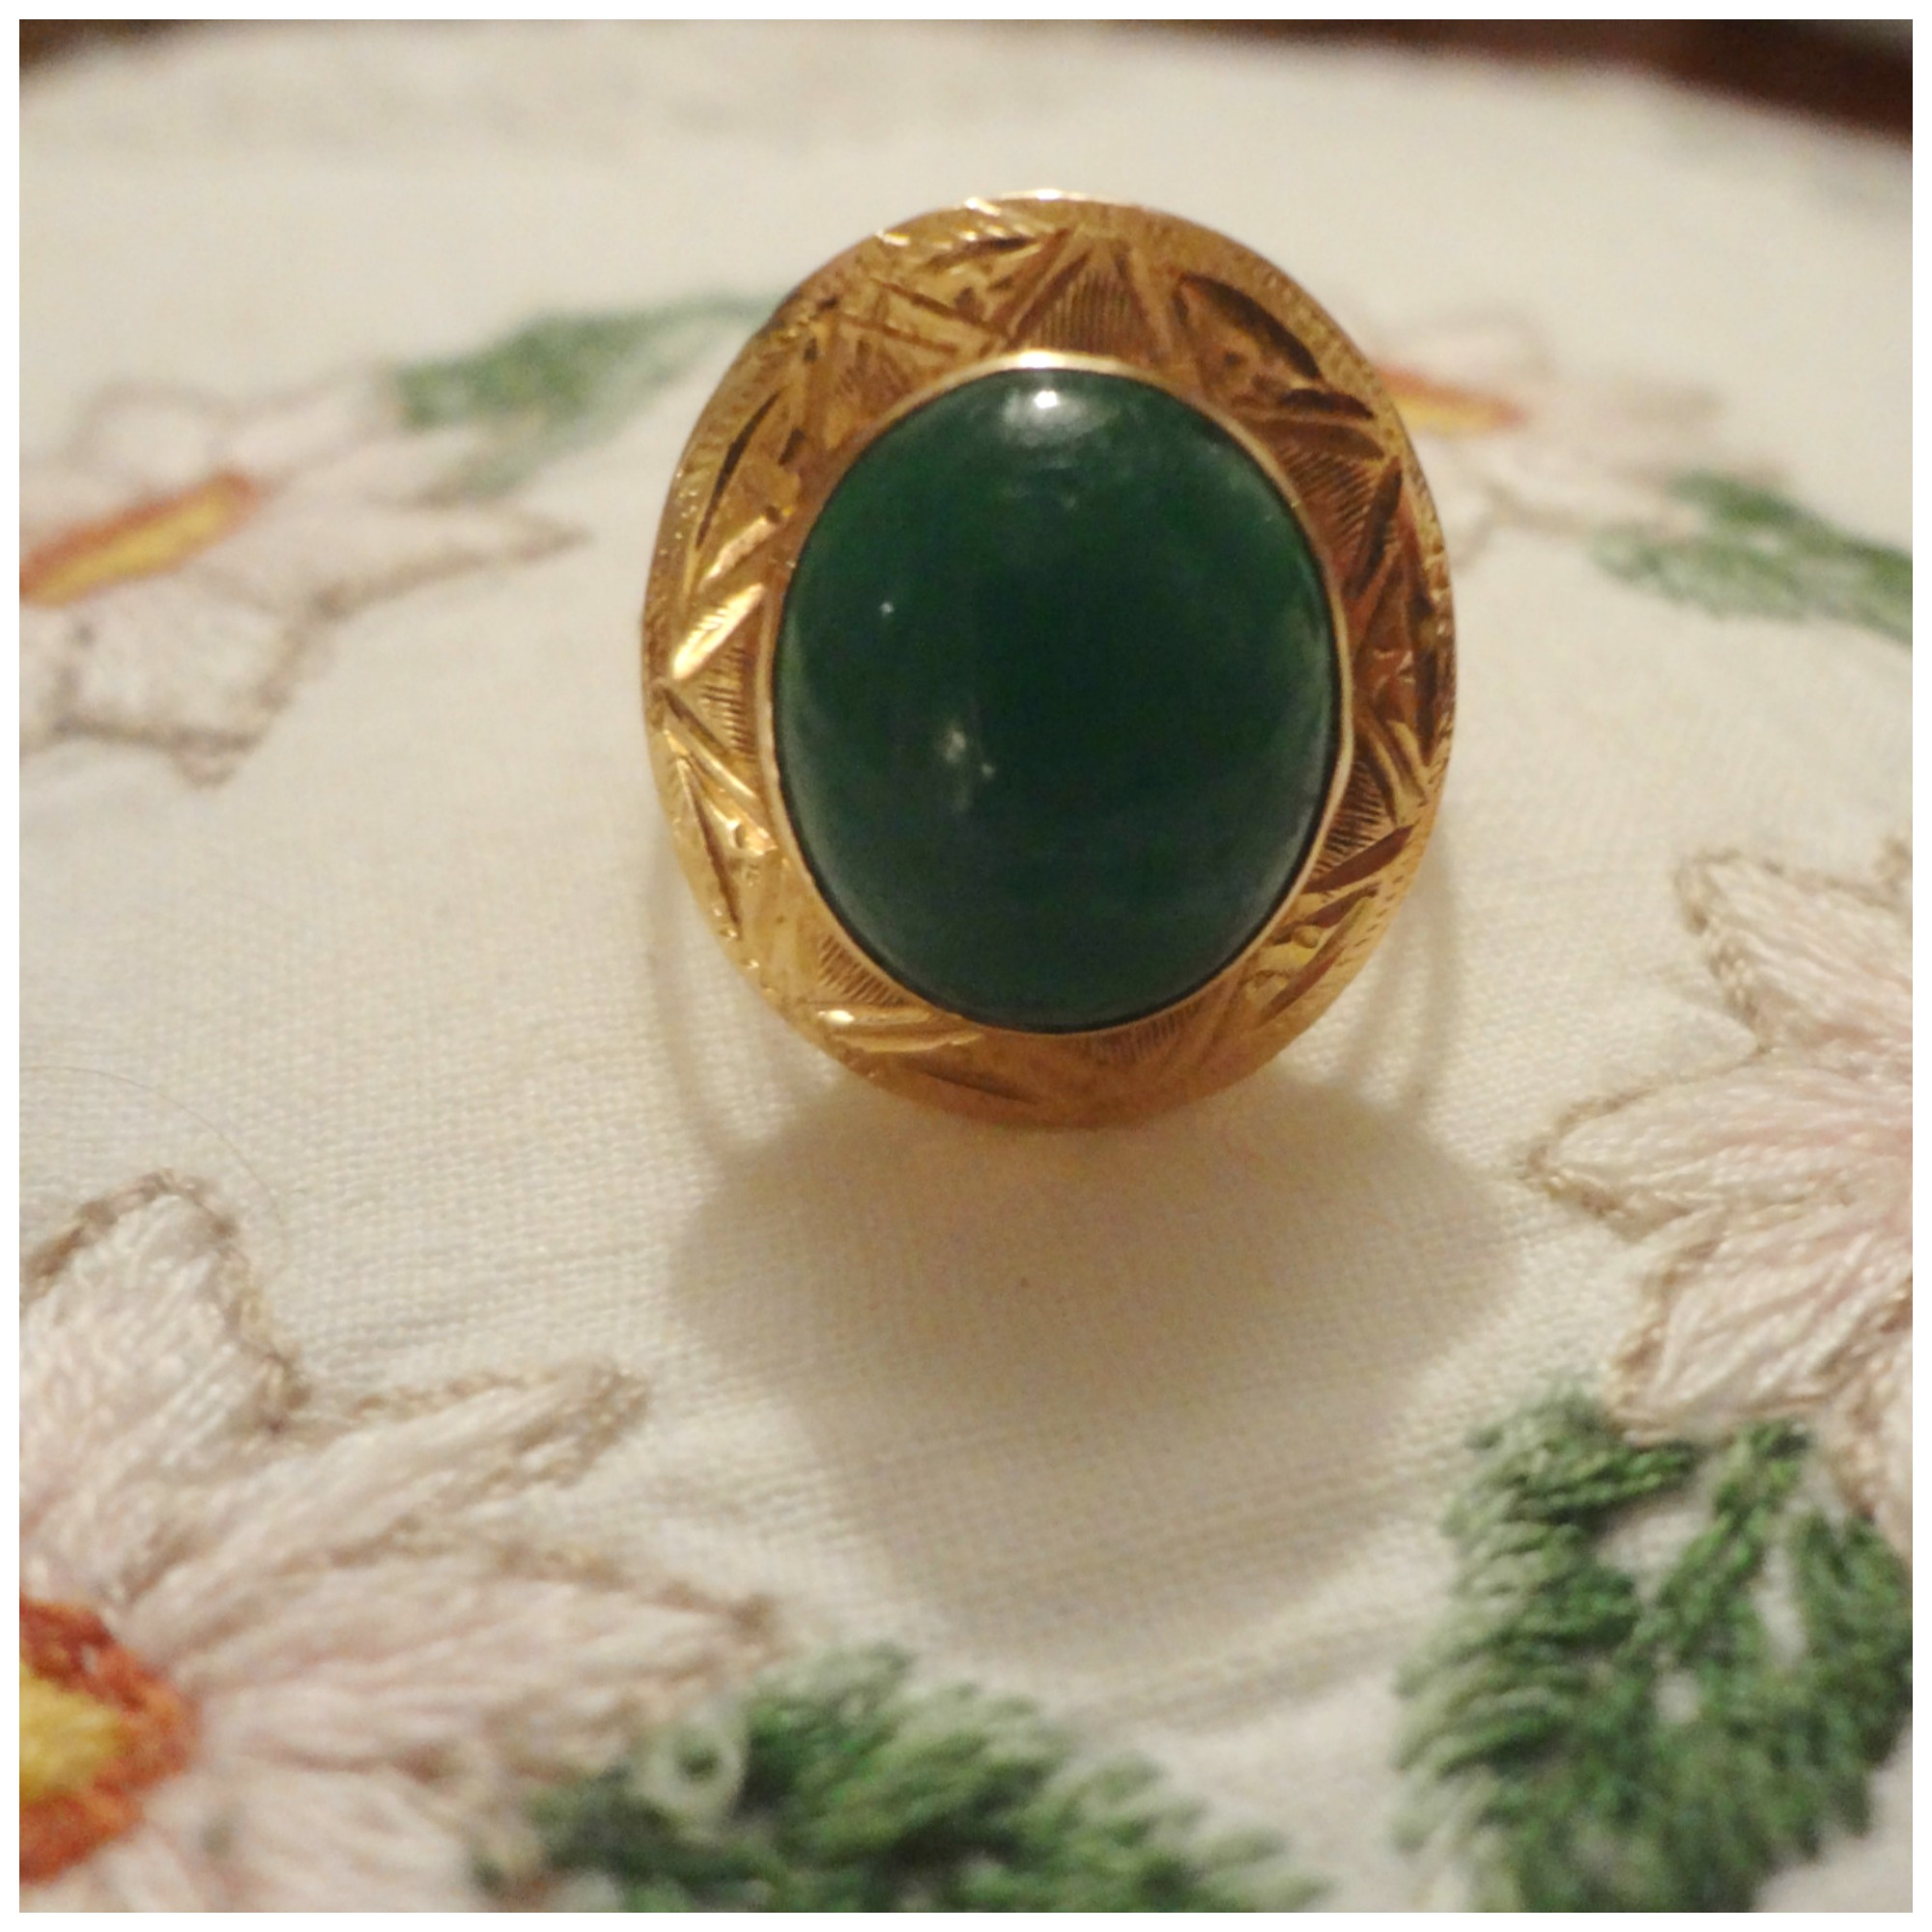 I really love this ring, since I was a child!